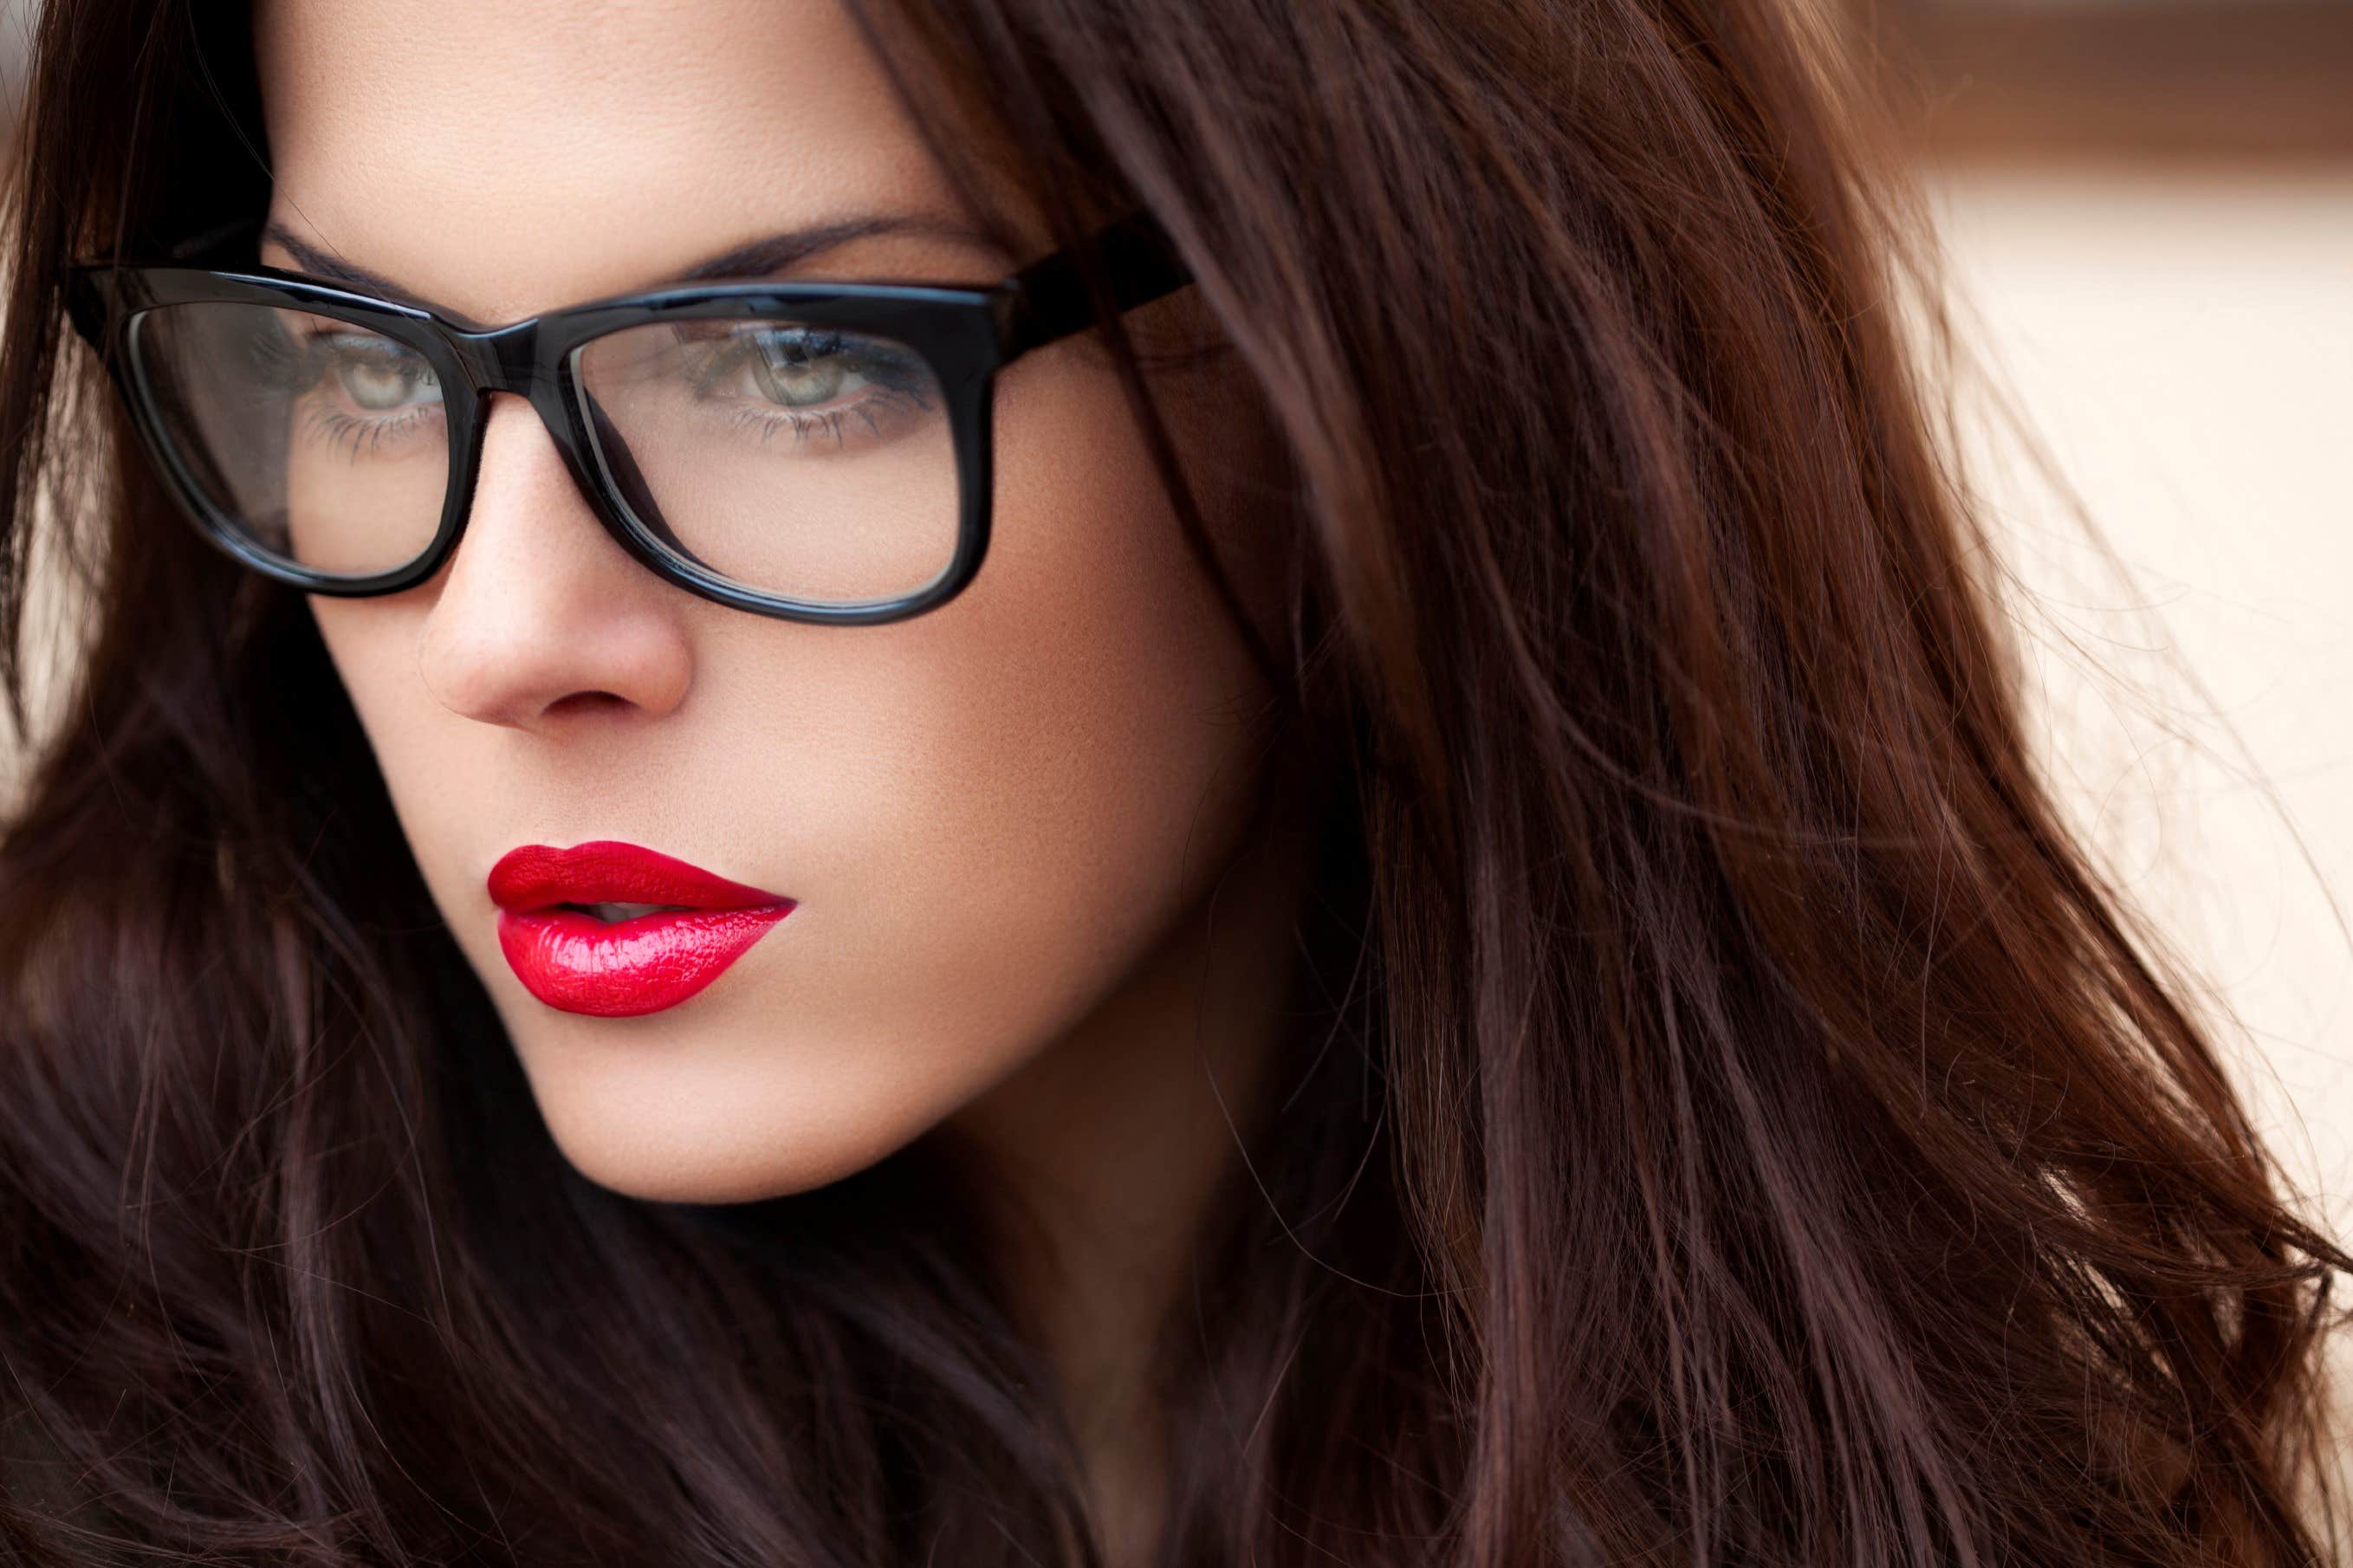 Rimless Glasses Makeup : A Guide To Wearing Makeup With Glasses - Goggles4u.co.uk